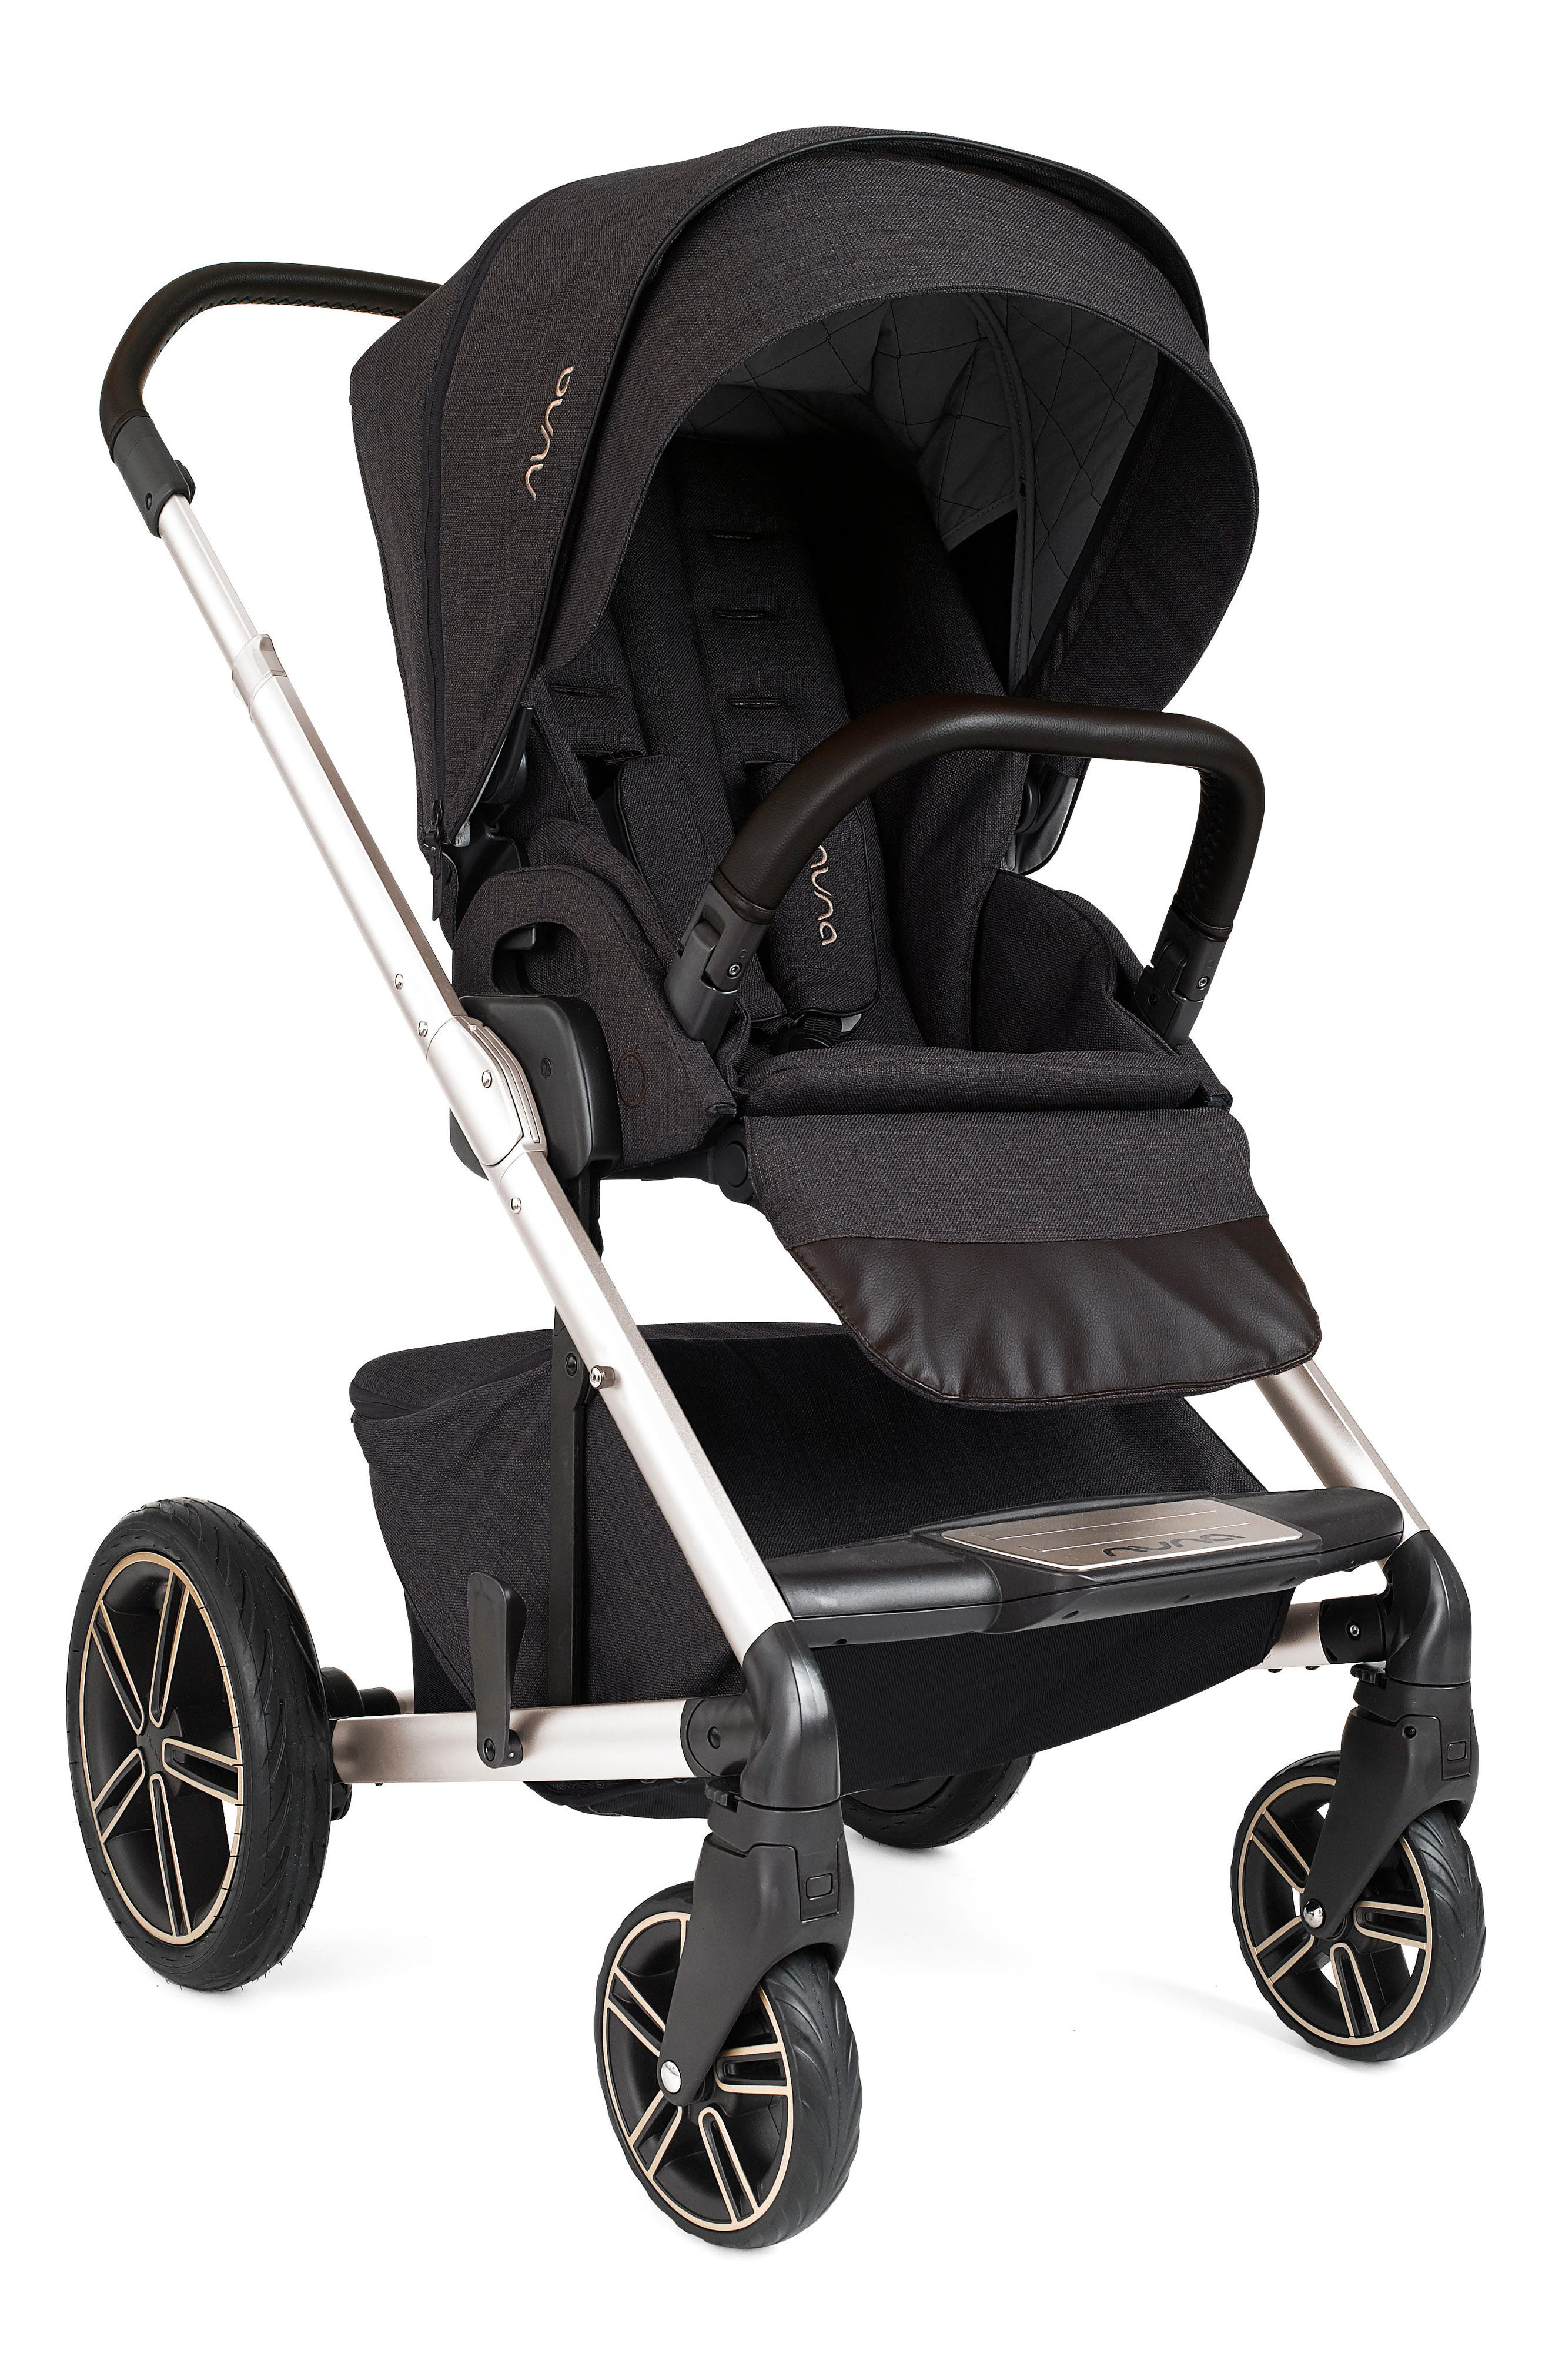 MIXX<sup>™</sup> Suited Collection Stroller & Bassinet Set,                             Main thumbnail 1, color,                             001